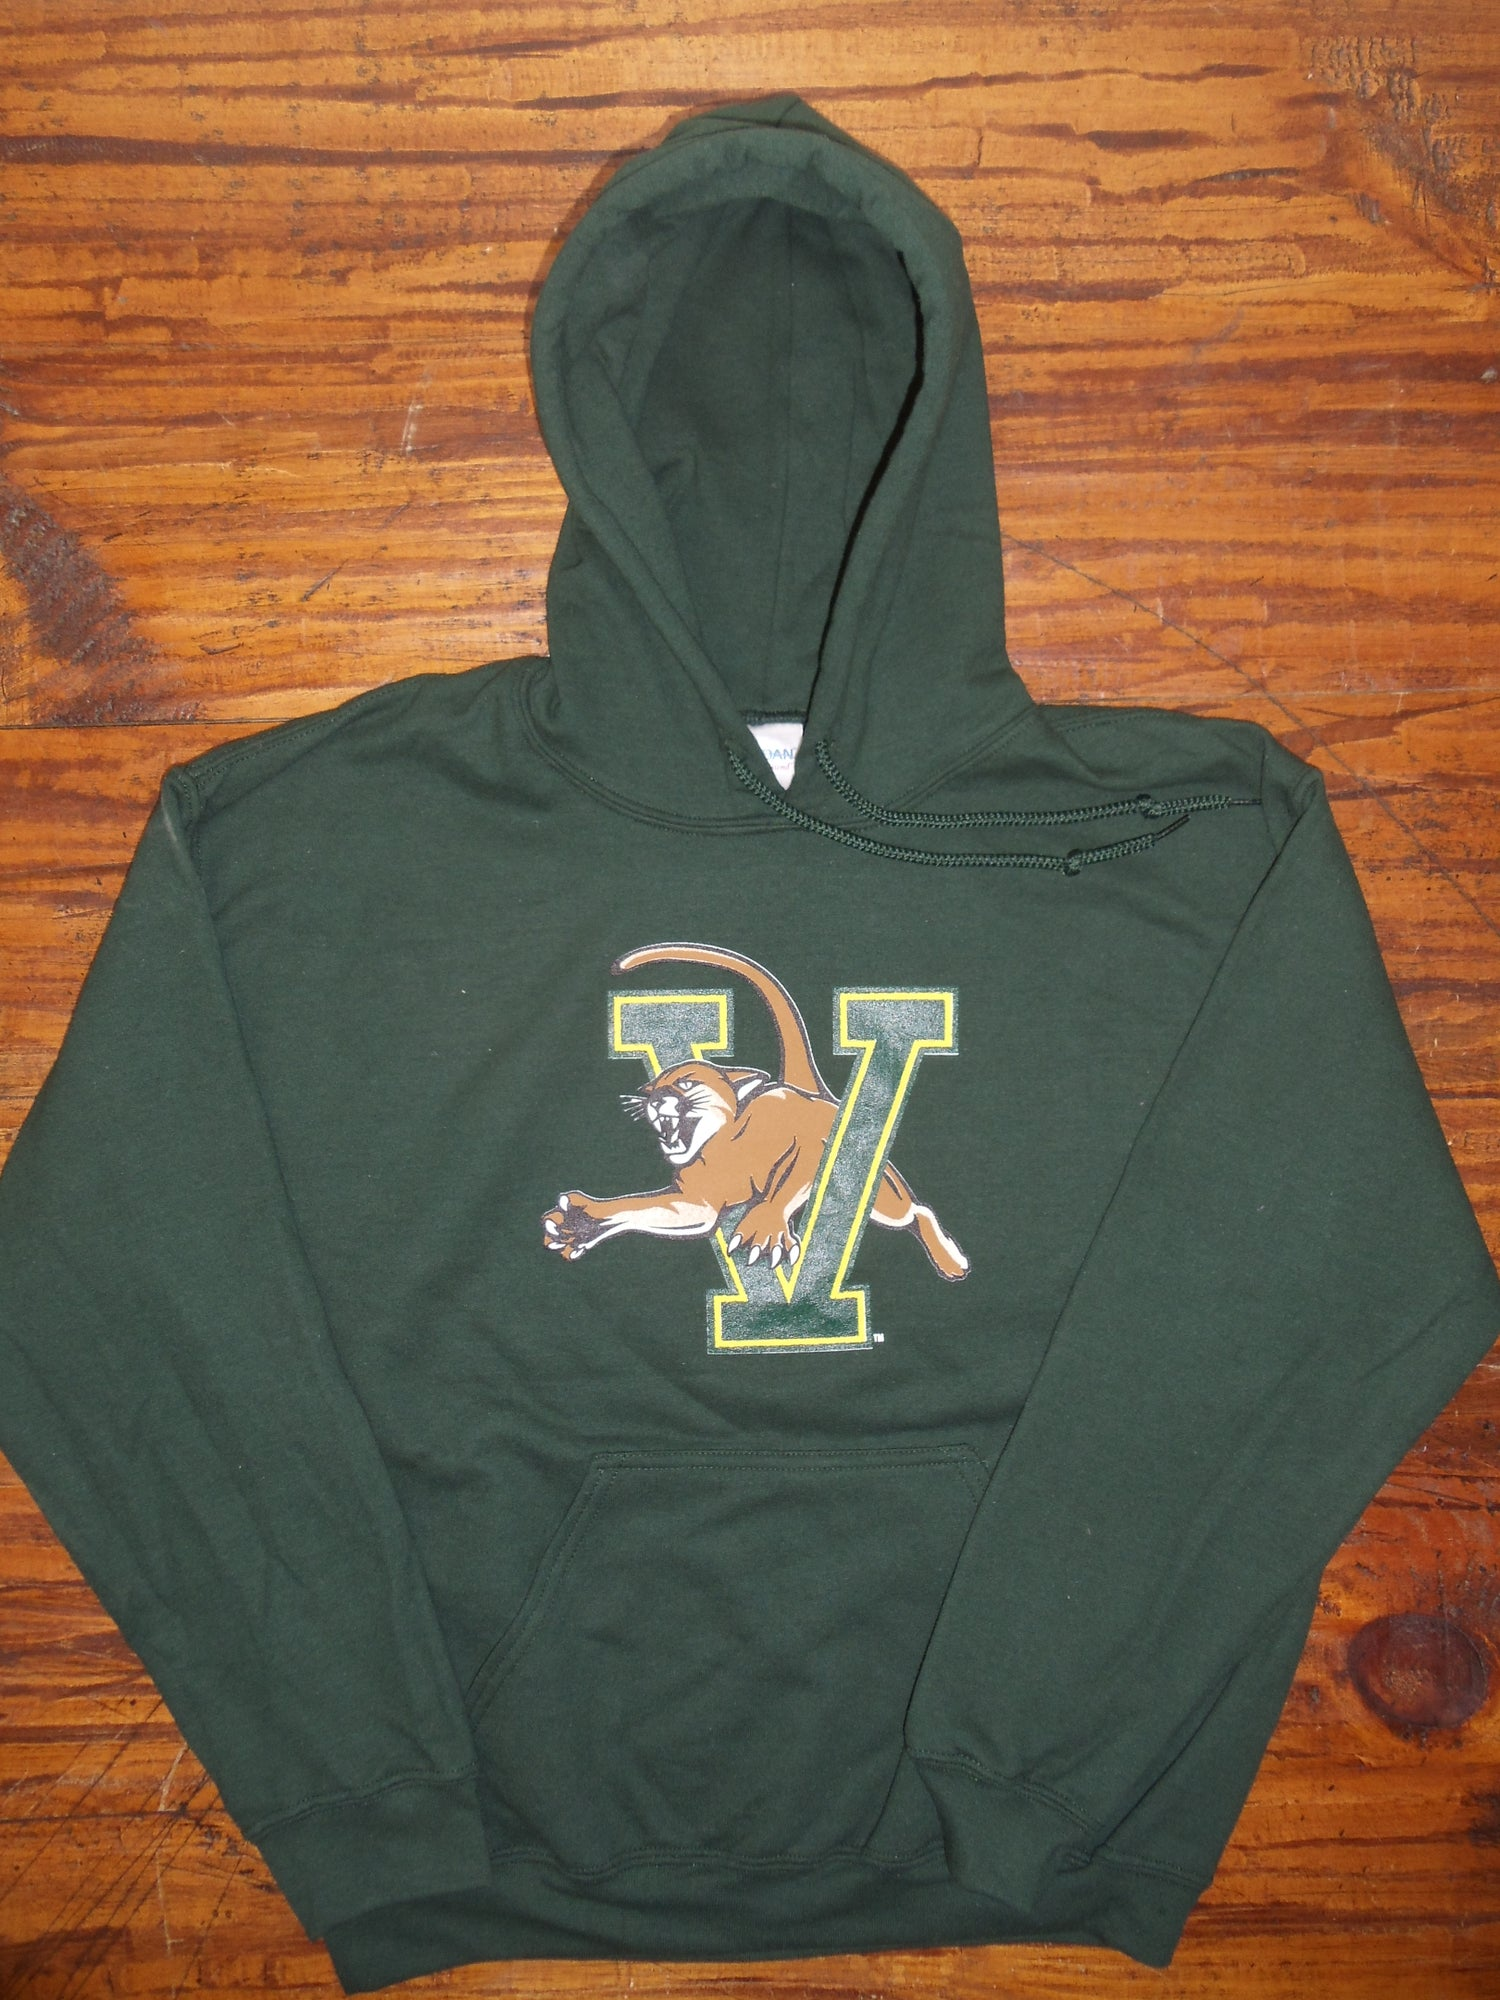 Image of UVM University of Vermont (VCAT) Catamount Hooded Sweatshirt on Forest Green